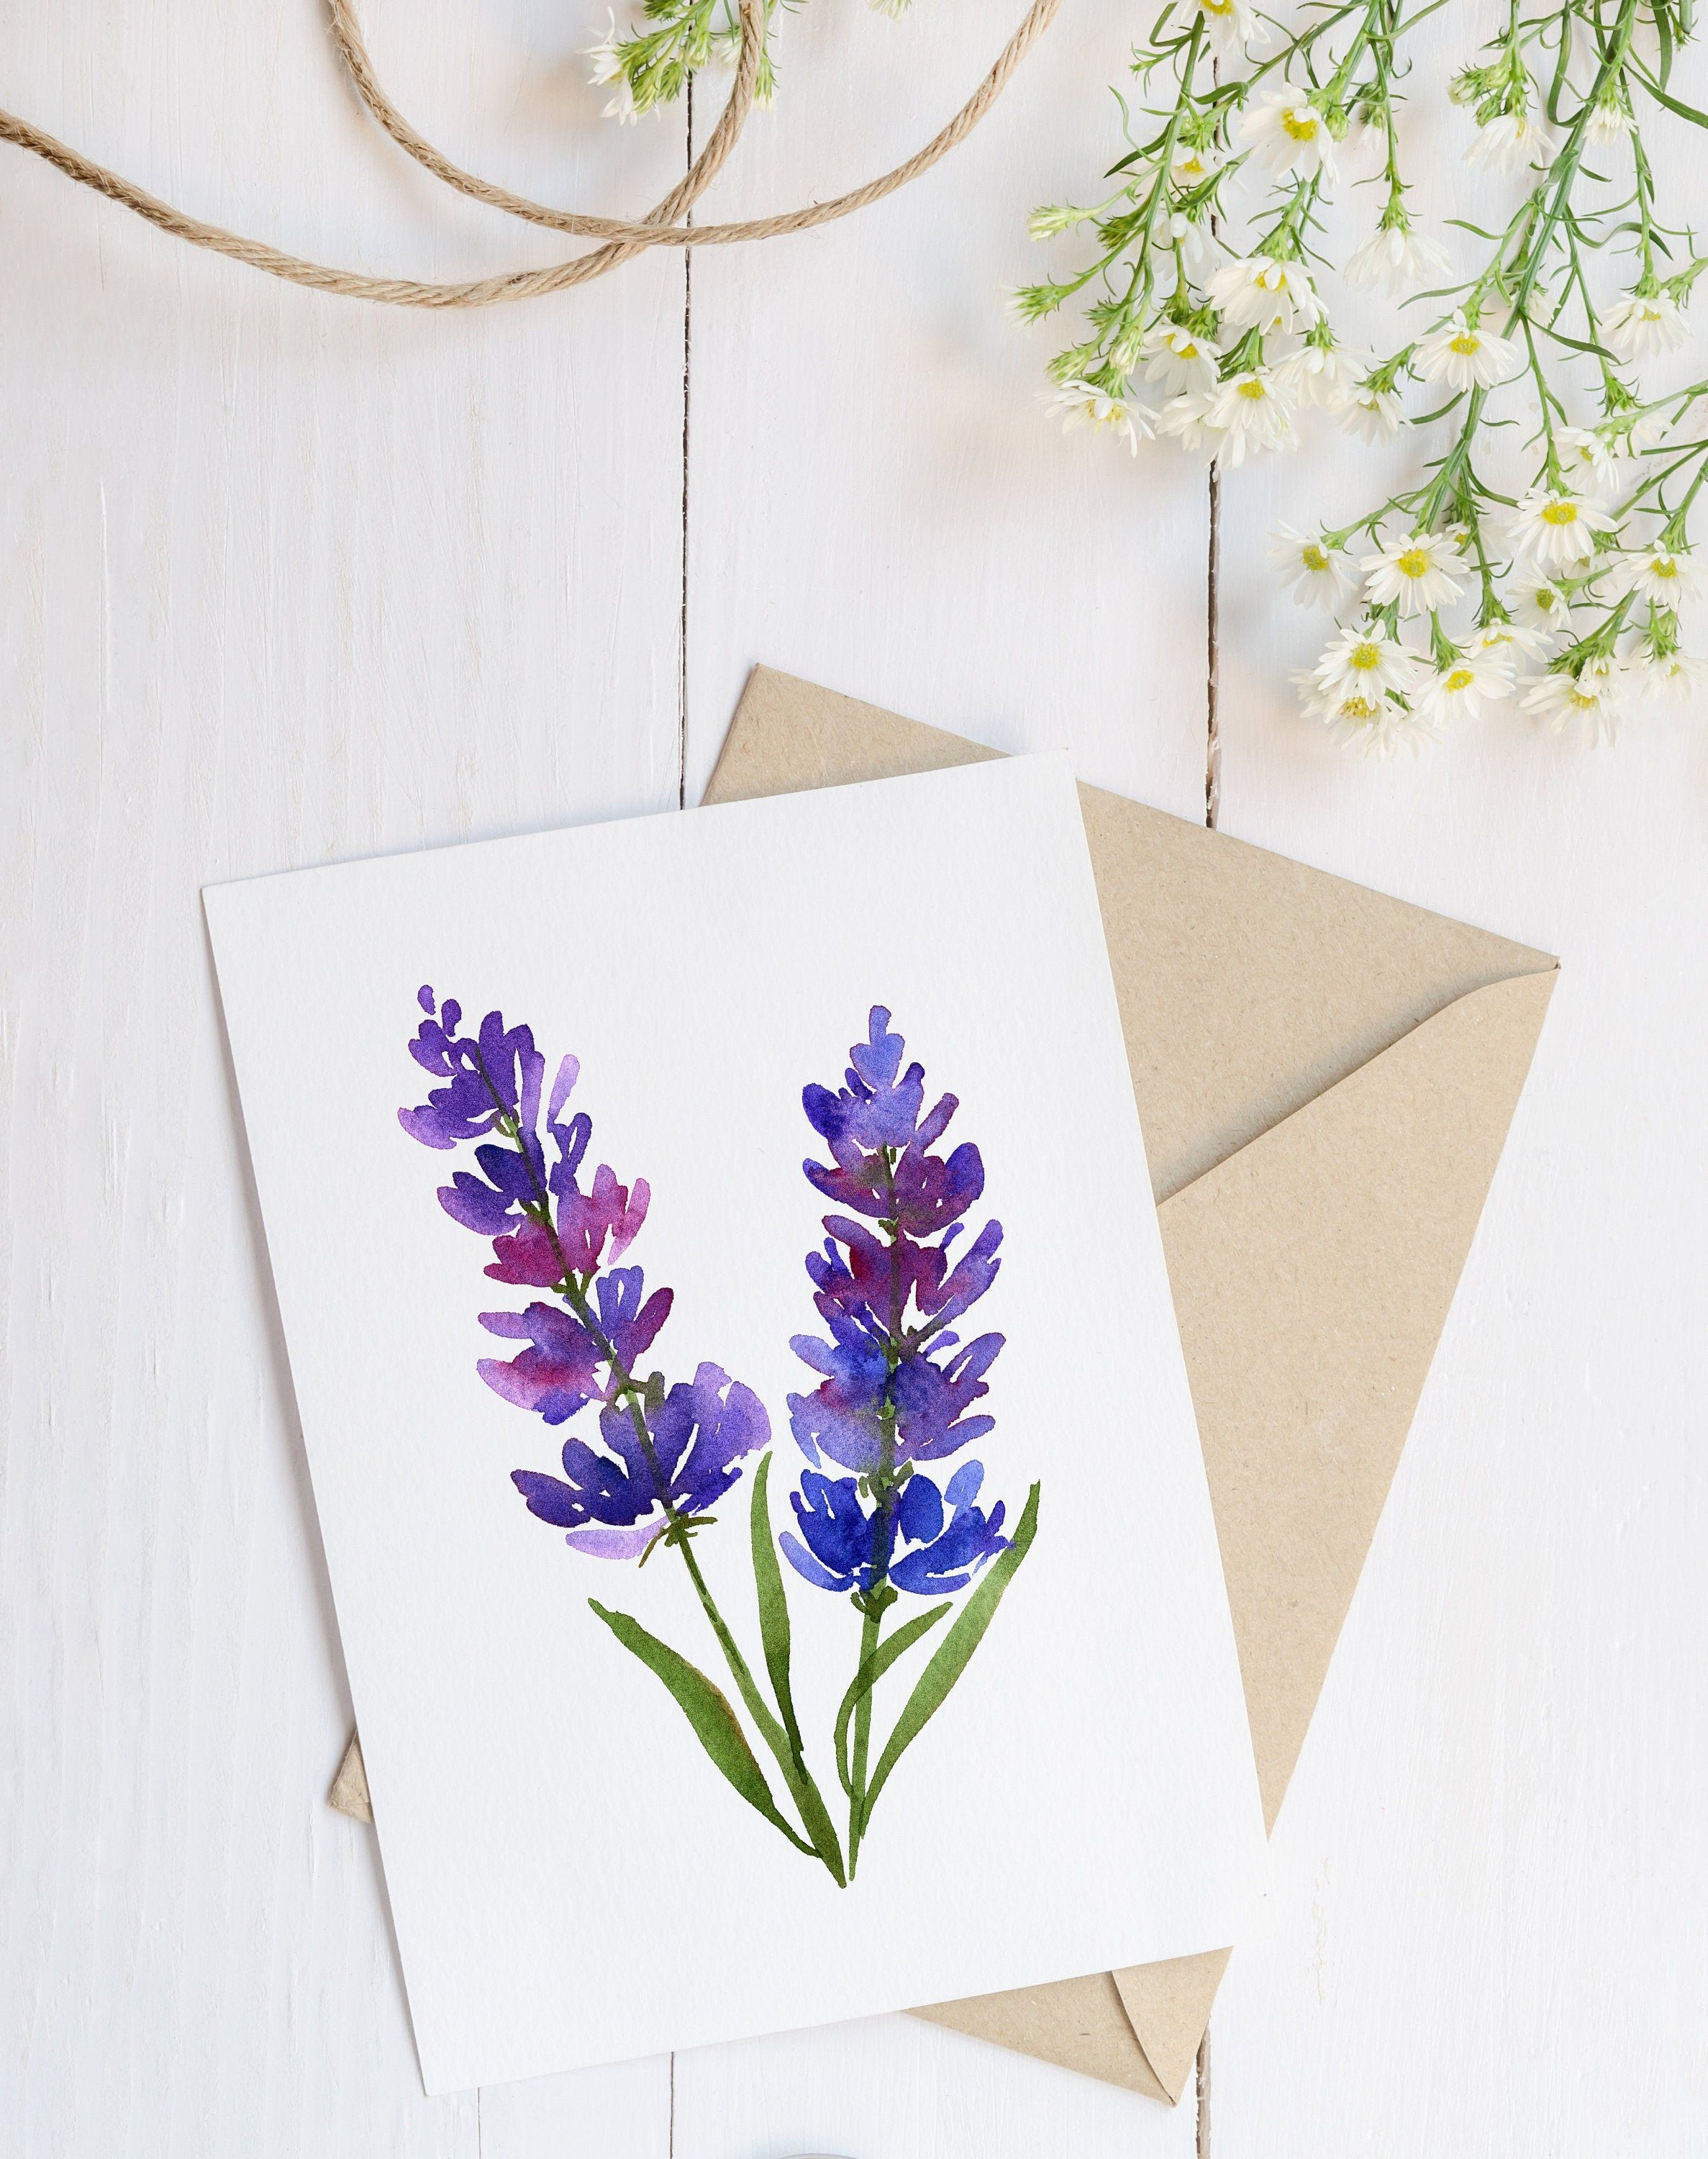 Lavender Flower Card Mother 39 S Day Watercolor Card Gift For Mom Mother Card Mother 39 Watercolor Flowers Card Diy Watercolor Cards Flower Cards